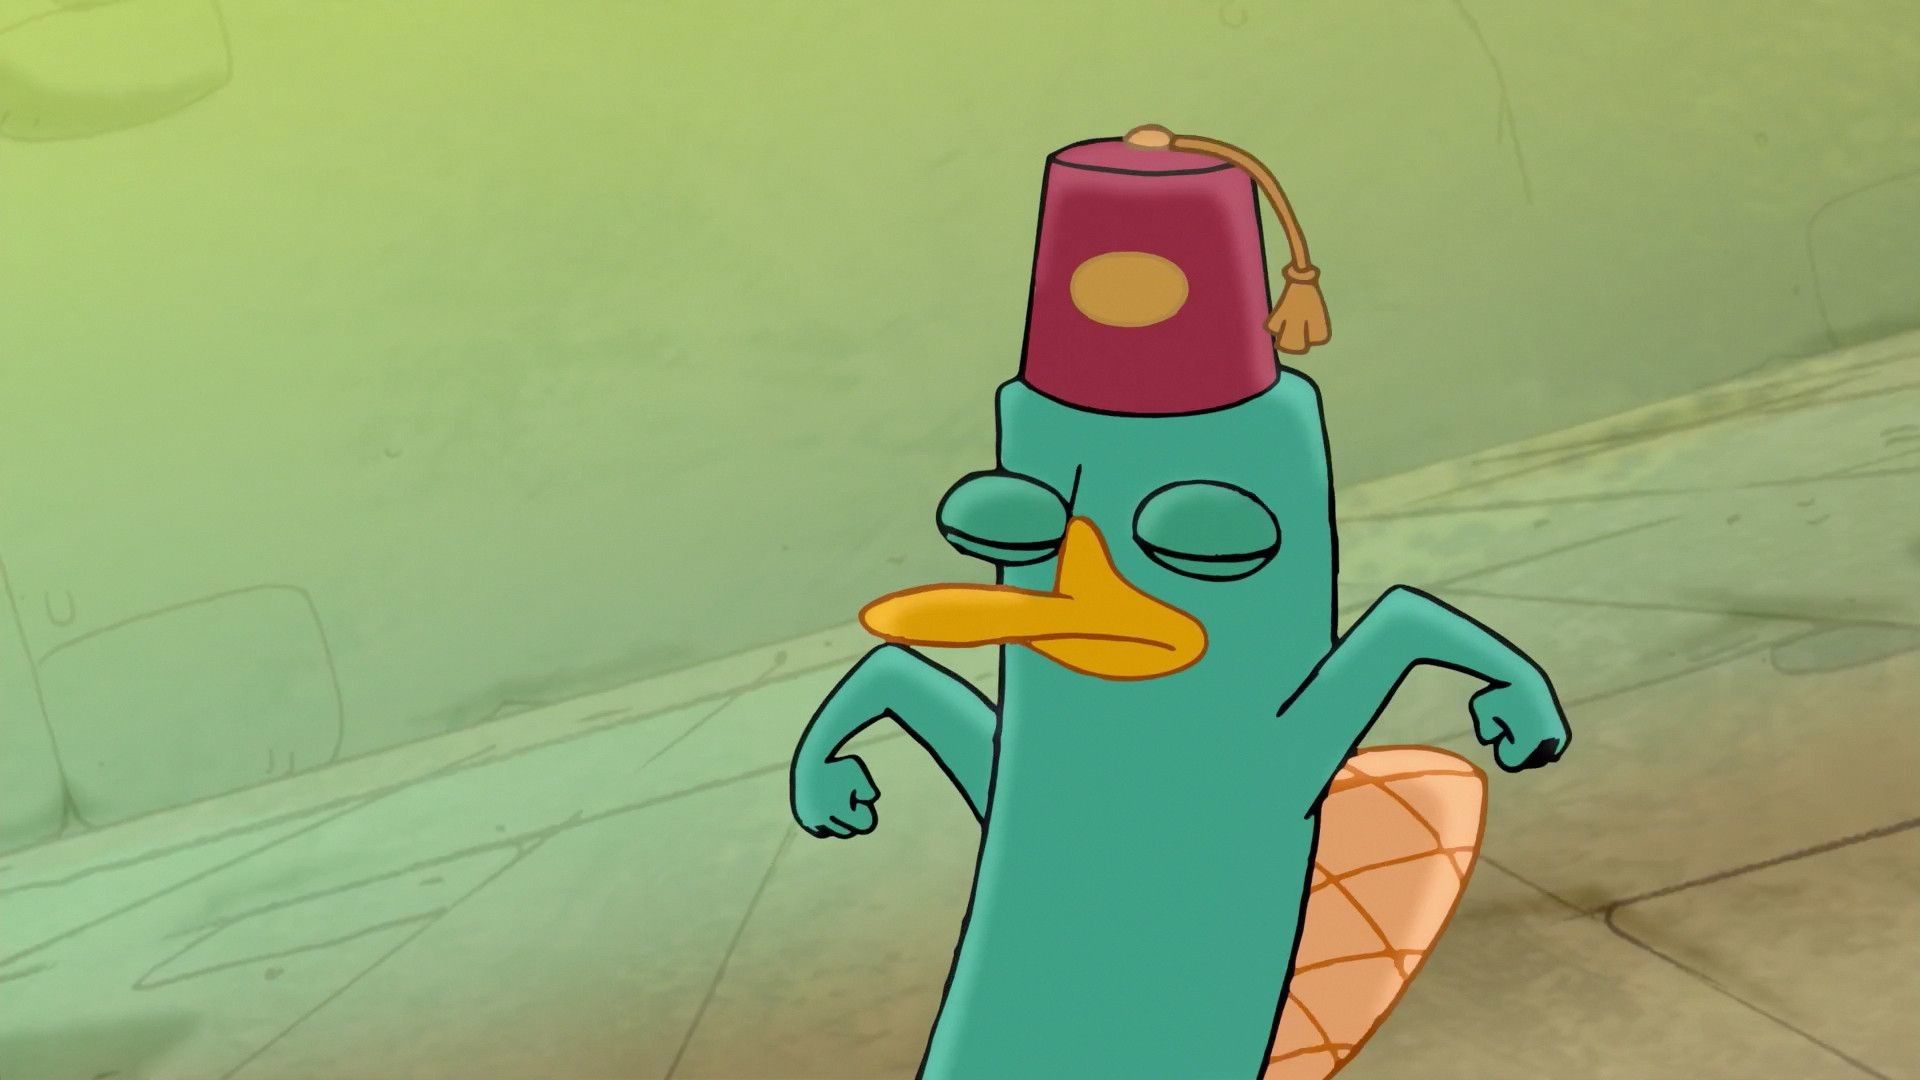 Perry the platypus wallpaper 54 images 1920x1080 perry the platypus wallpapers wallpapers hd wallpapers voltagebd Images